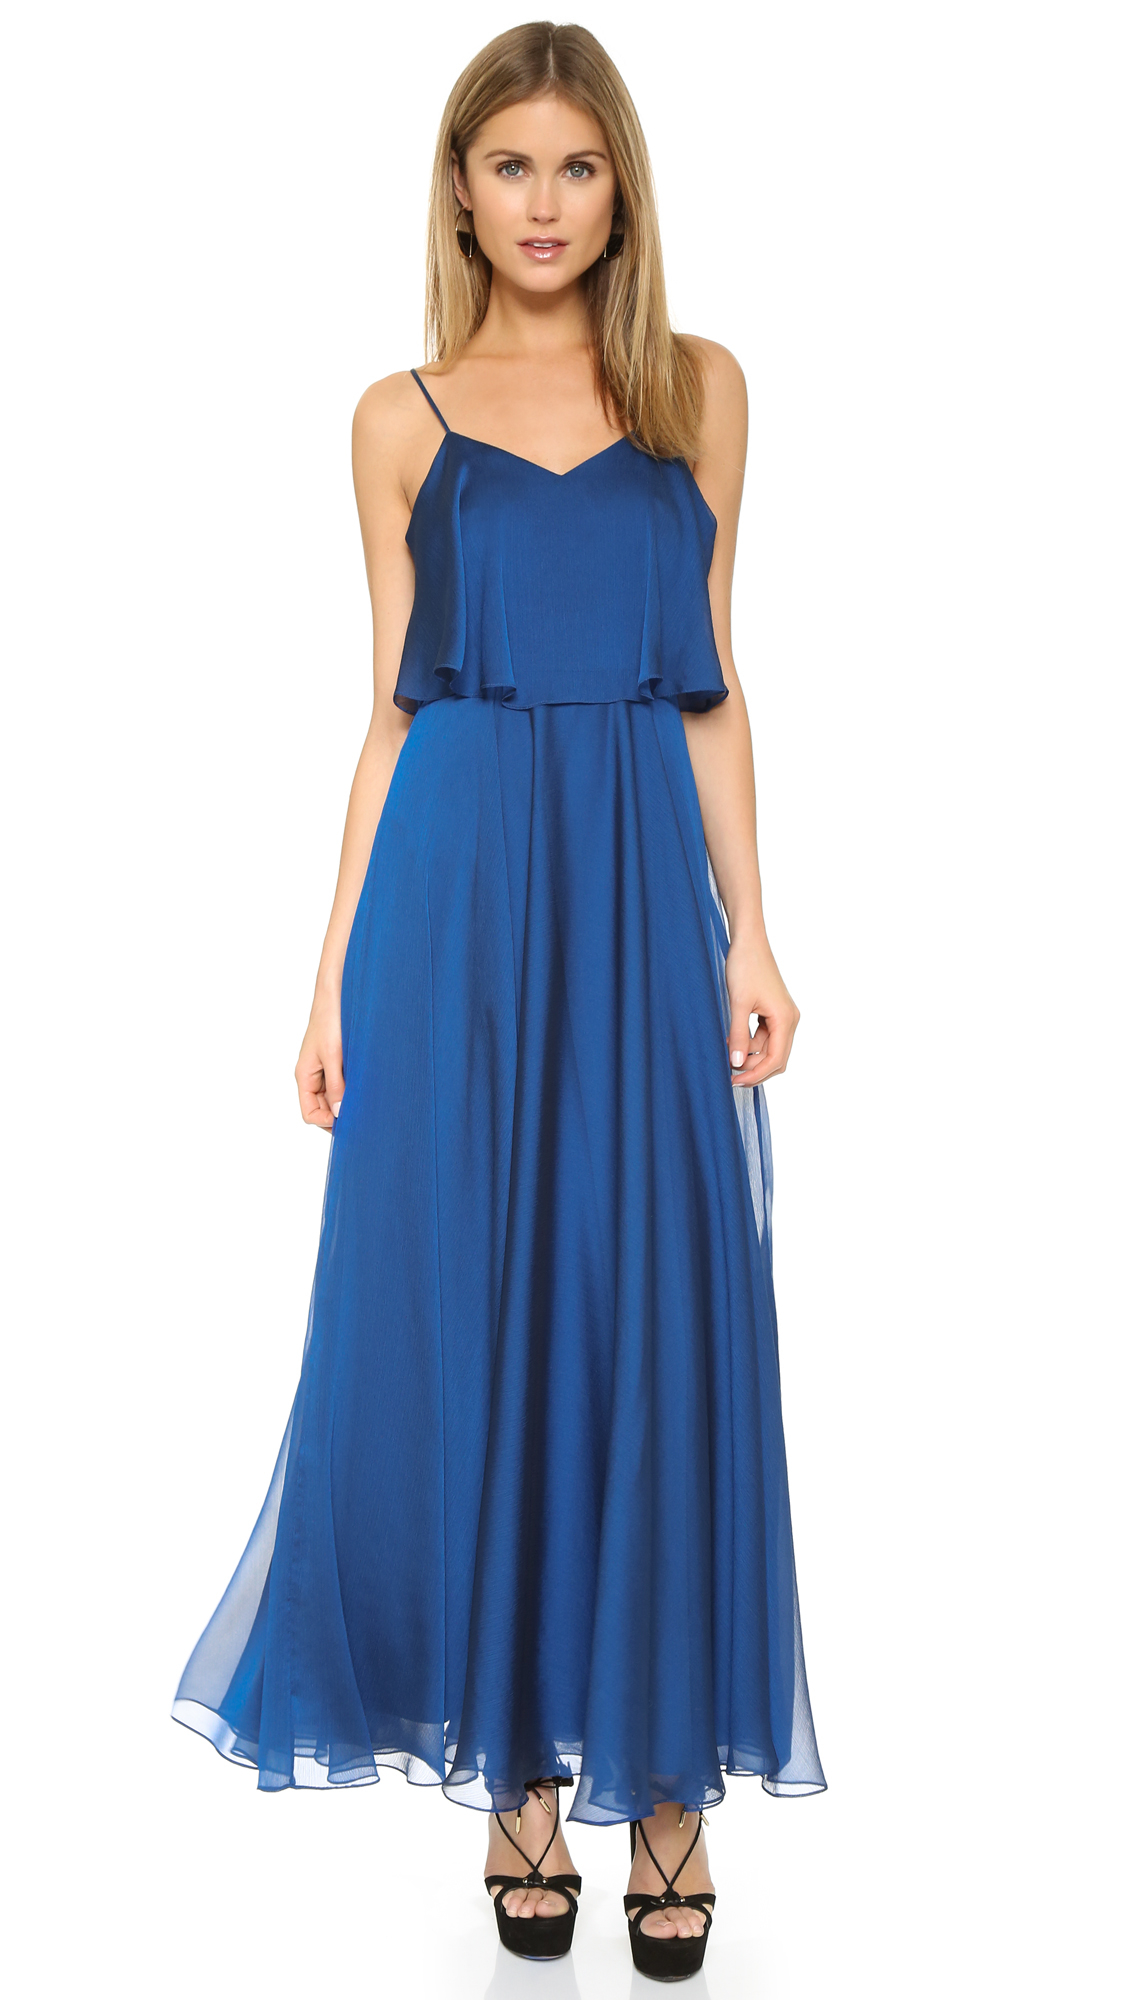 Halston iridescent chiffon gown in blue lyst for Halston heritage shirt dress